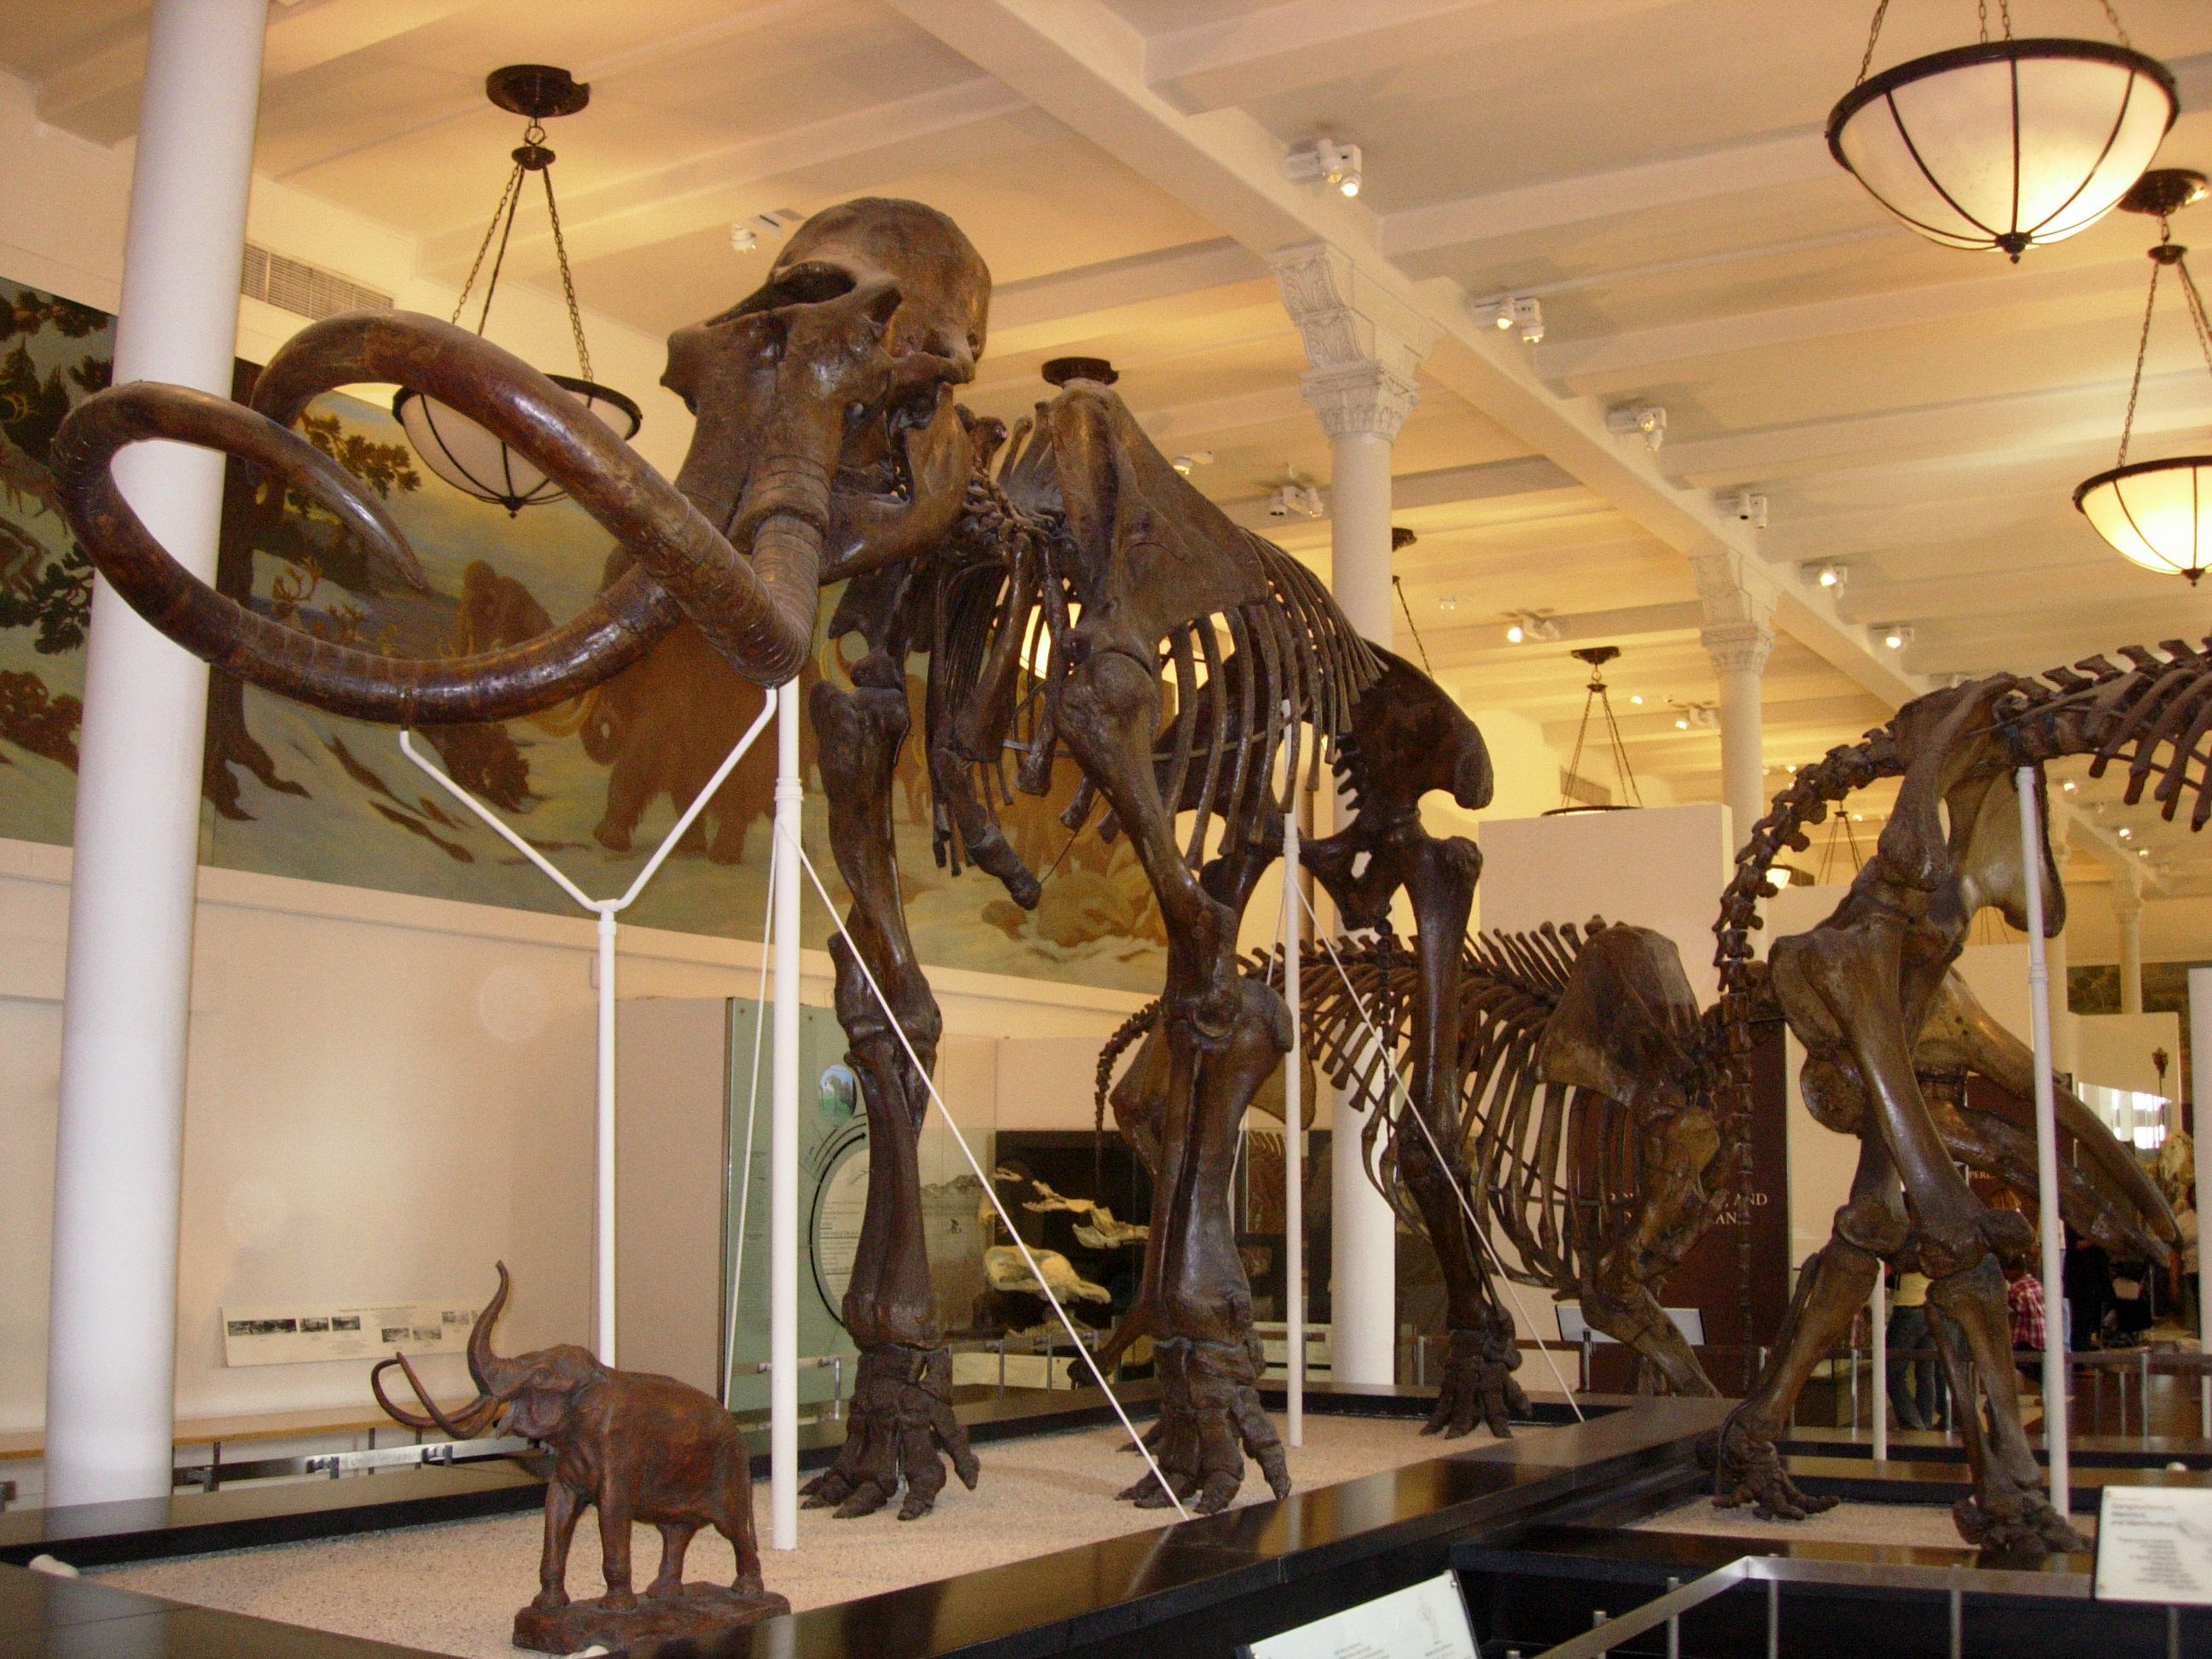 natural history museum dinosaurs - Google Search ...